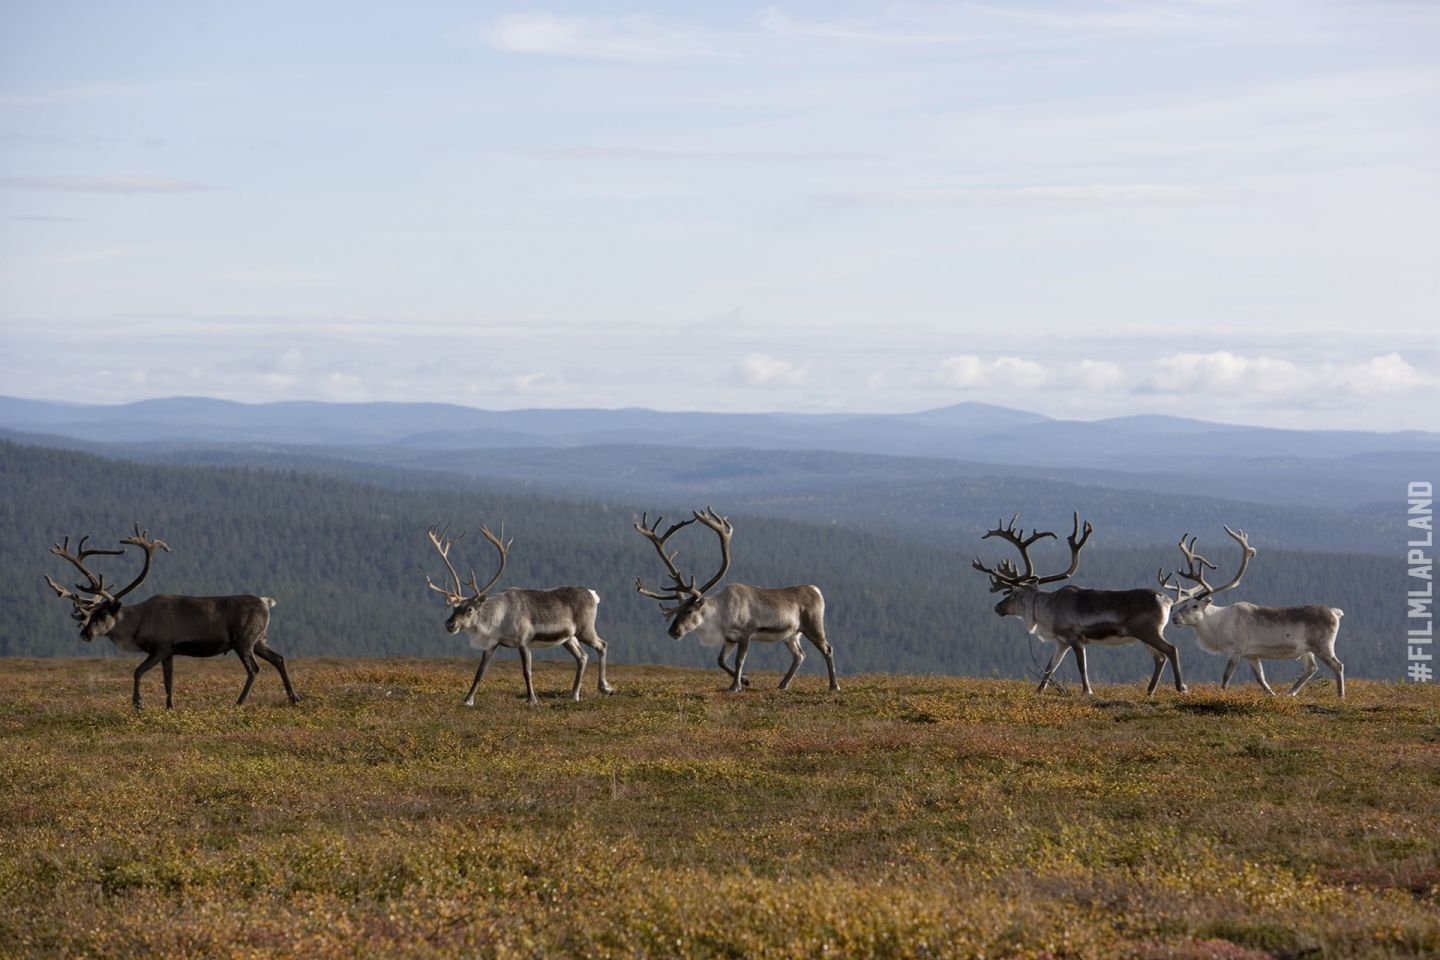 Reindeer enjoying a summer day in Inari, Lapland